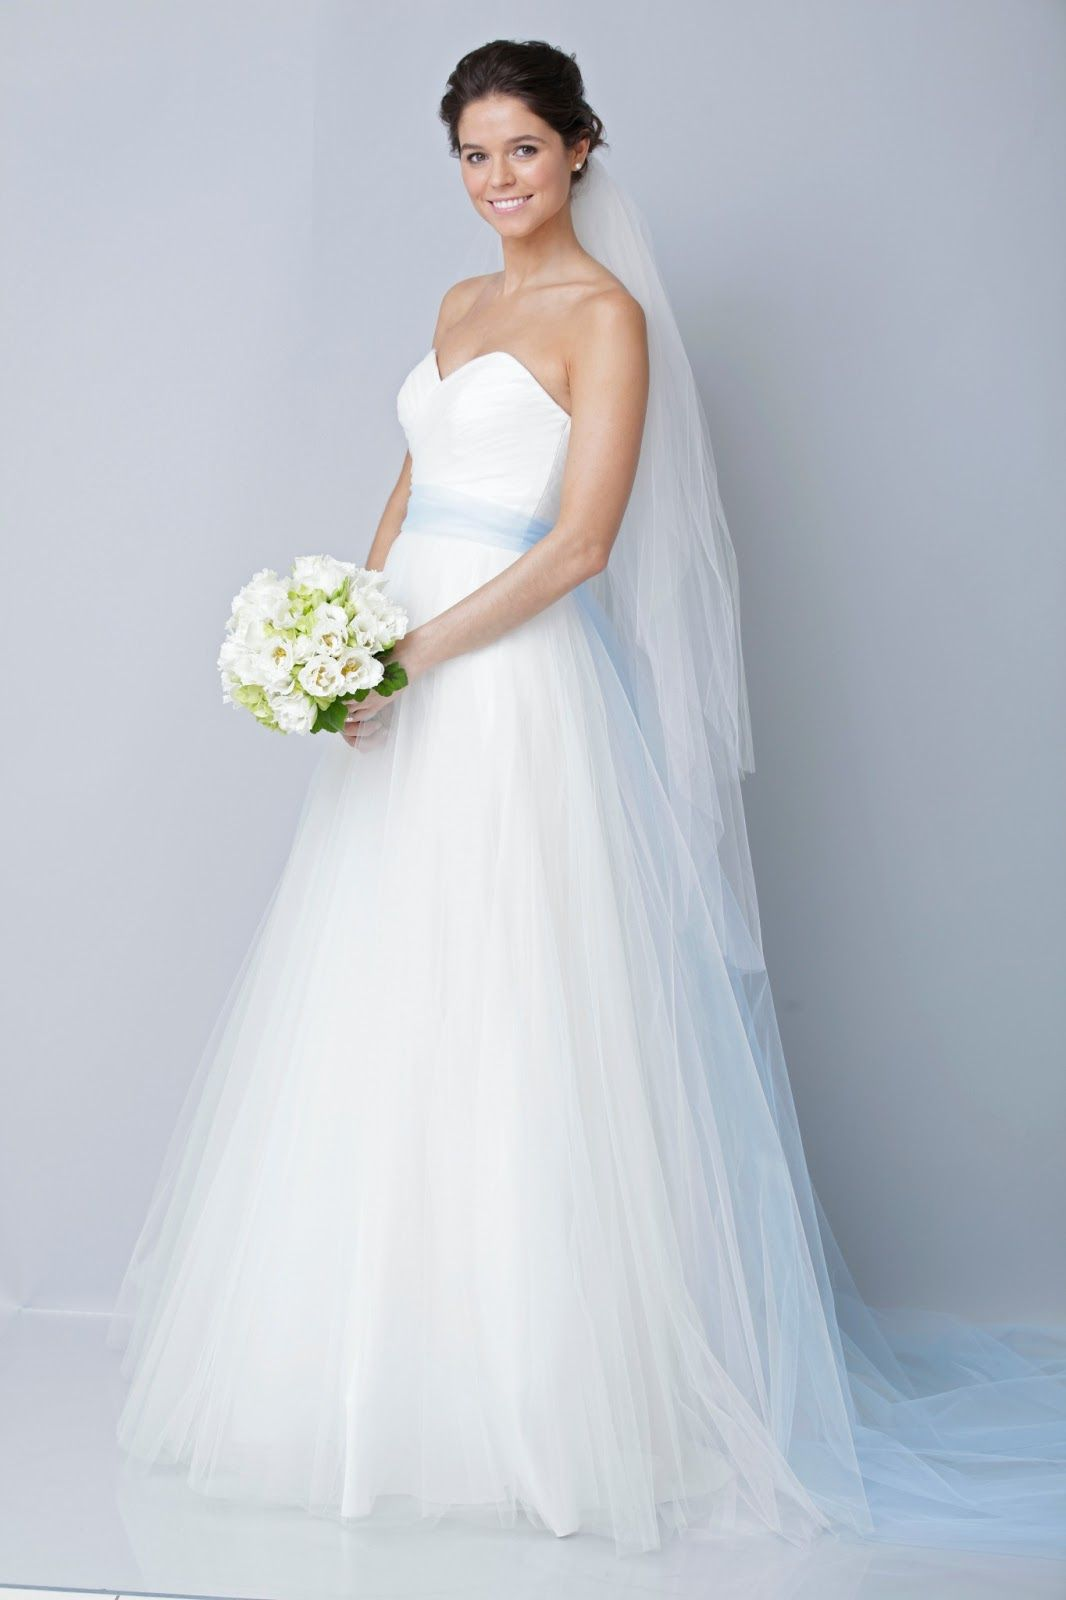 2019 White Dresses for Wedding - Dresses for Wedding Party Check ...